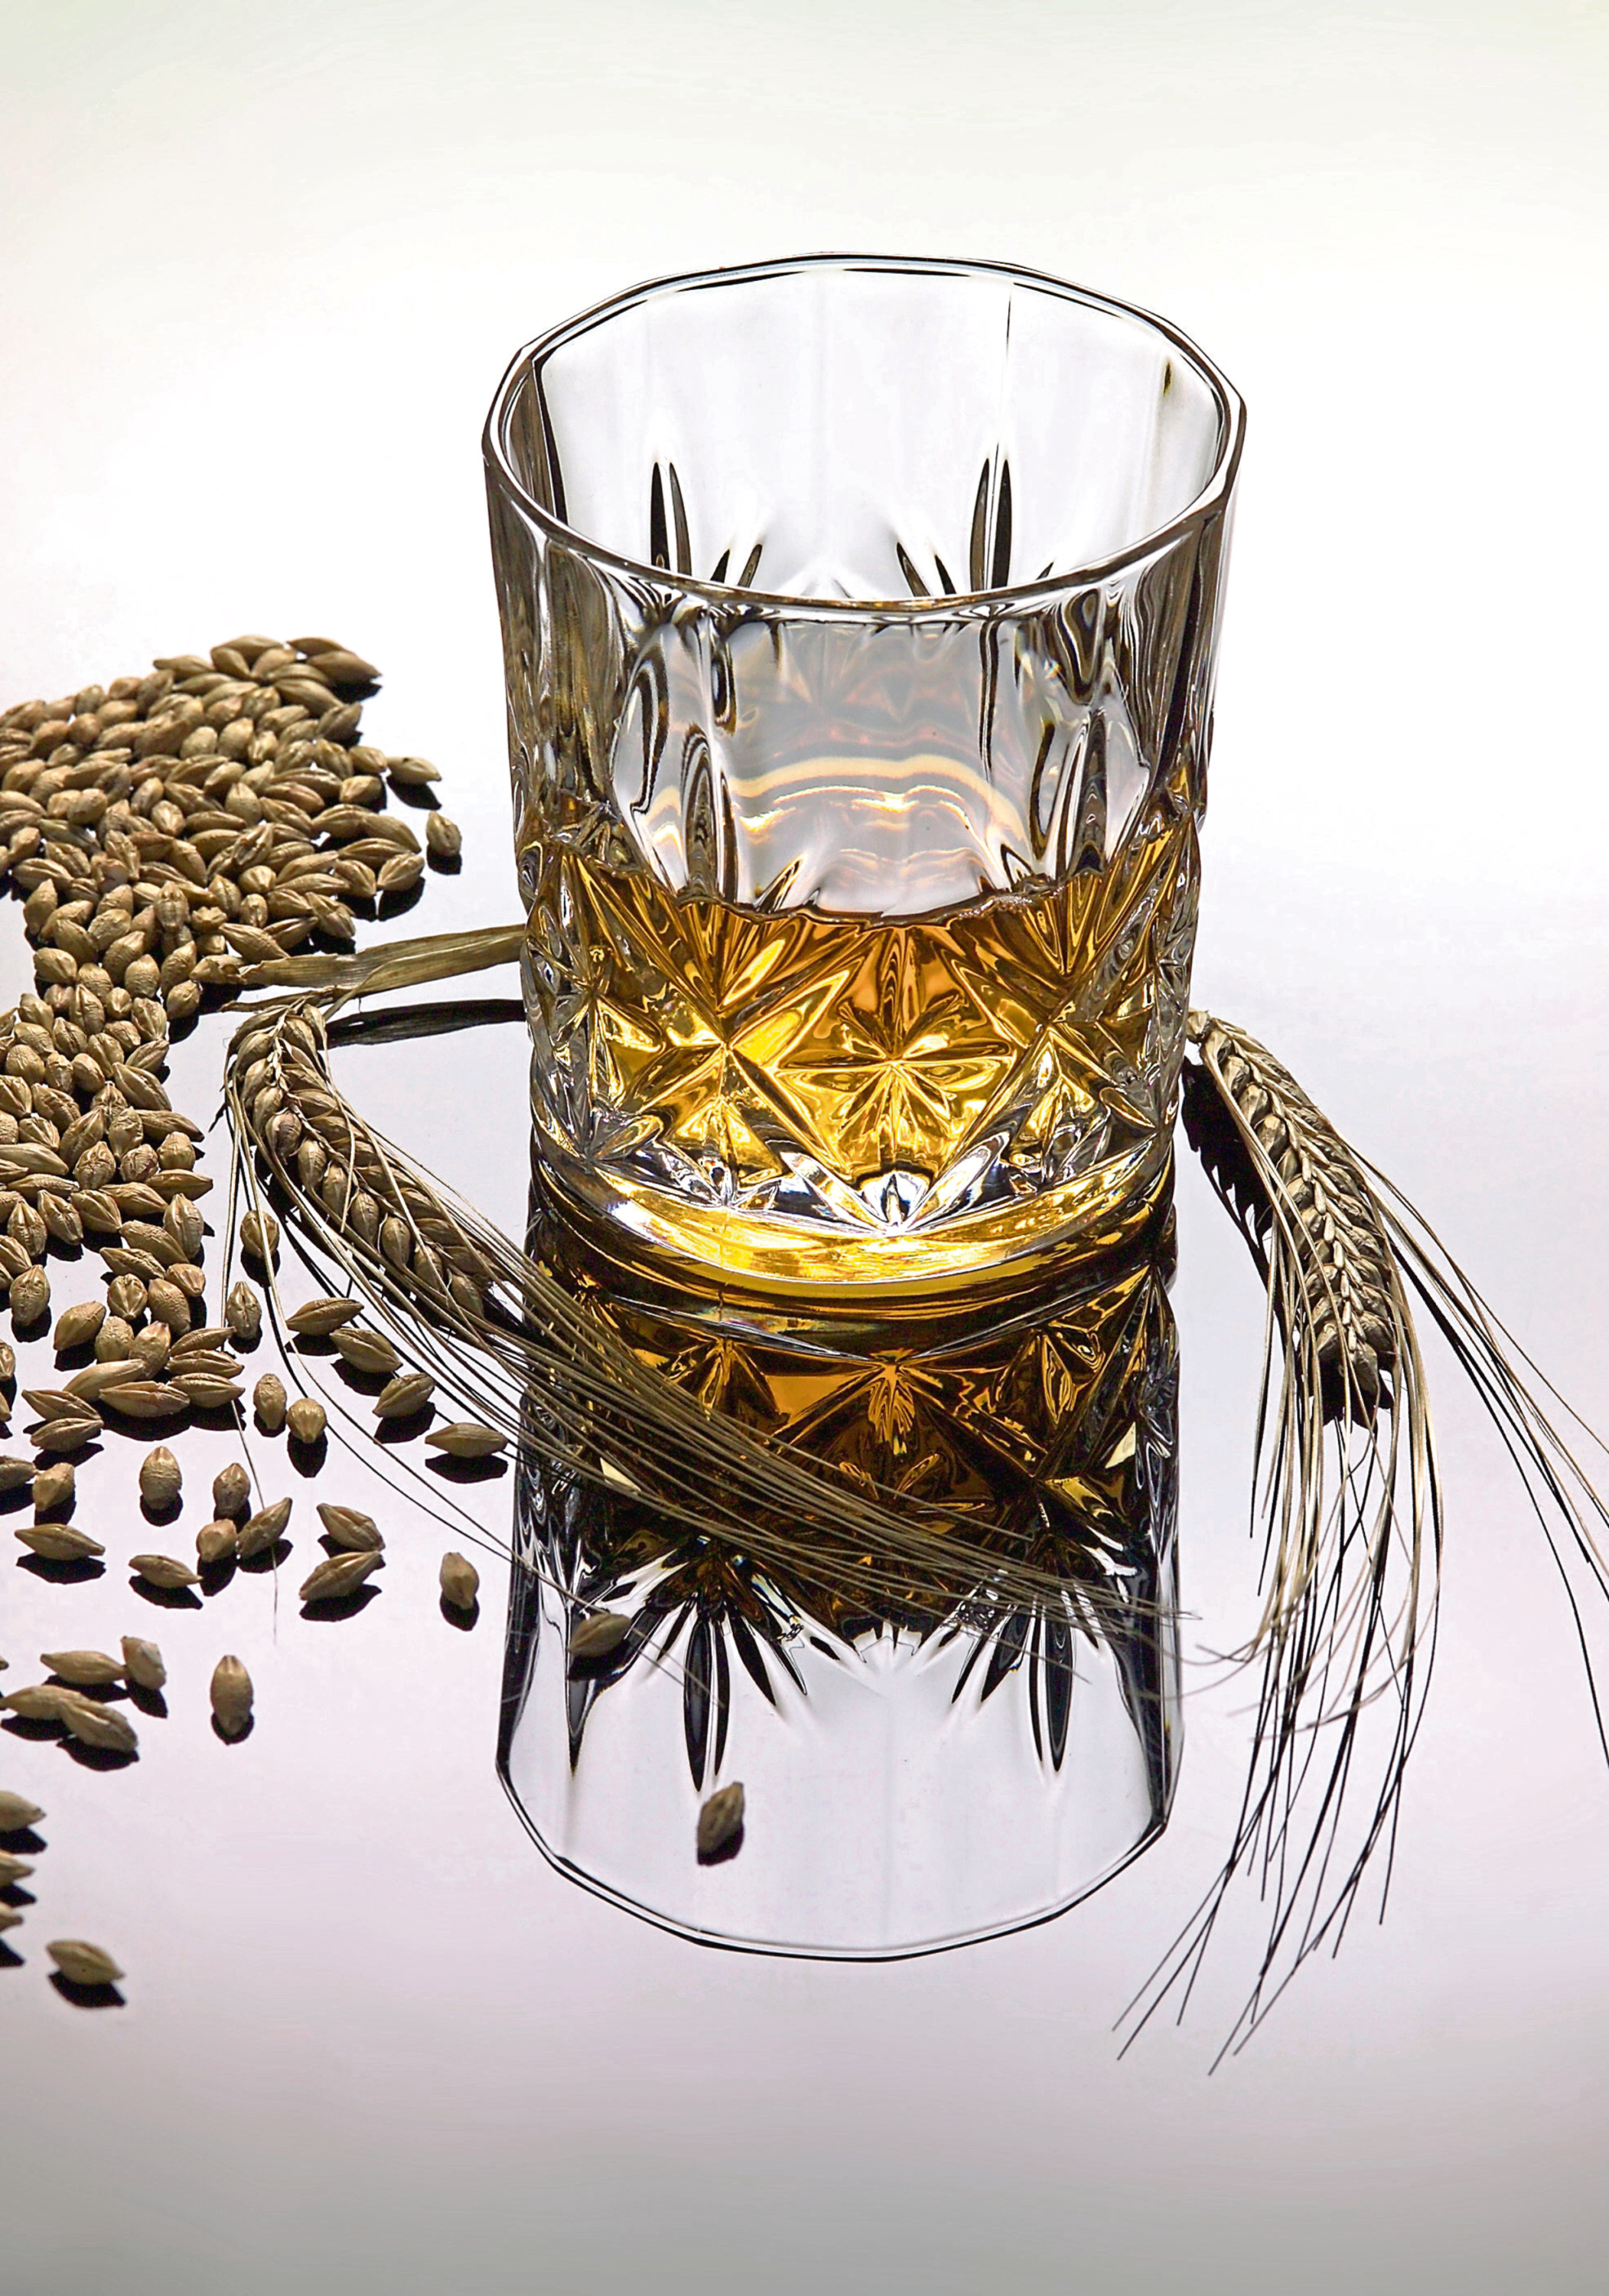 Without barley there is no Scotch whisky.